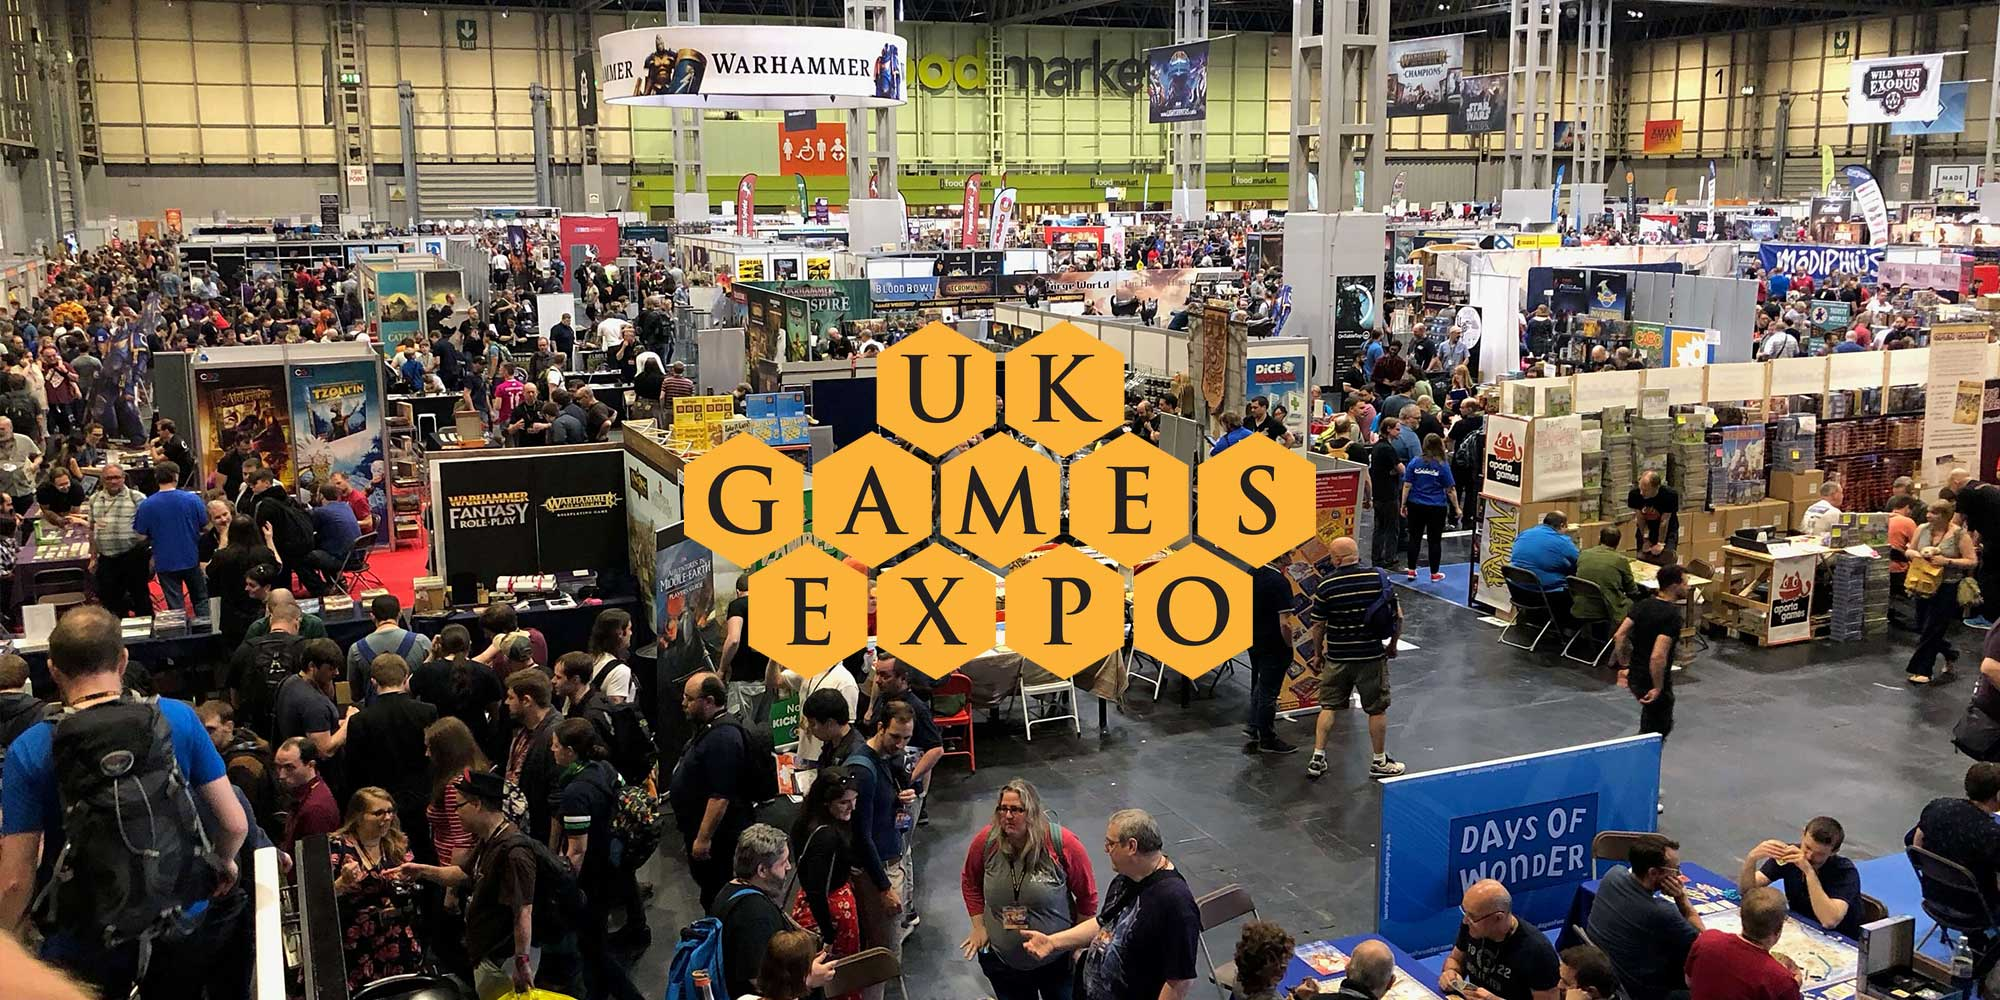 Best UK Gaming Events, Expos & Conventions 2019: Top 5 | Arcade Direct